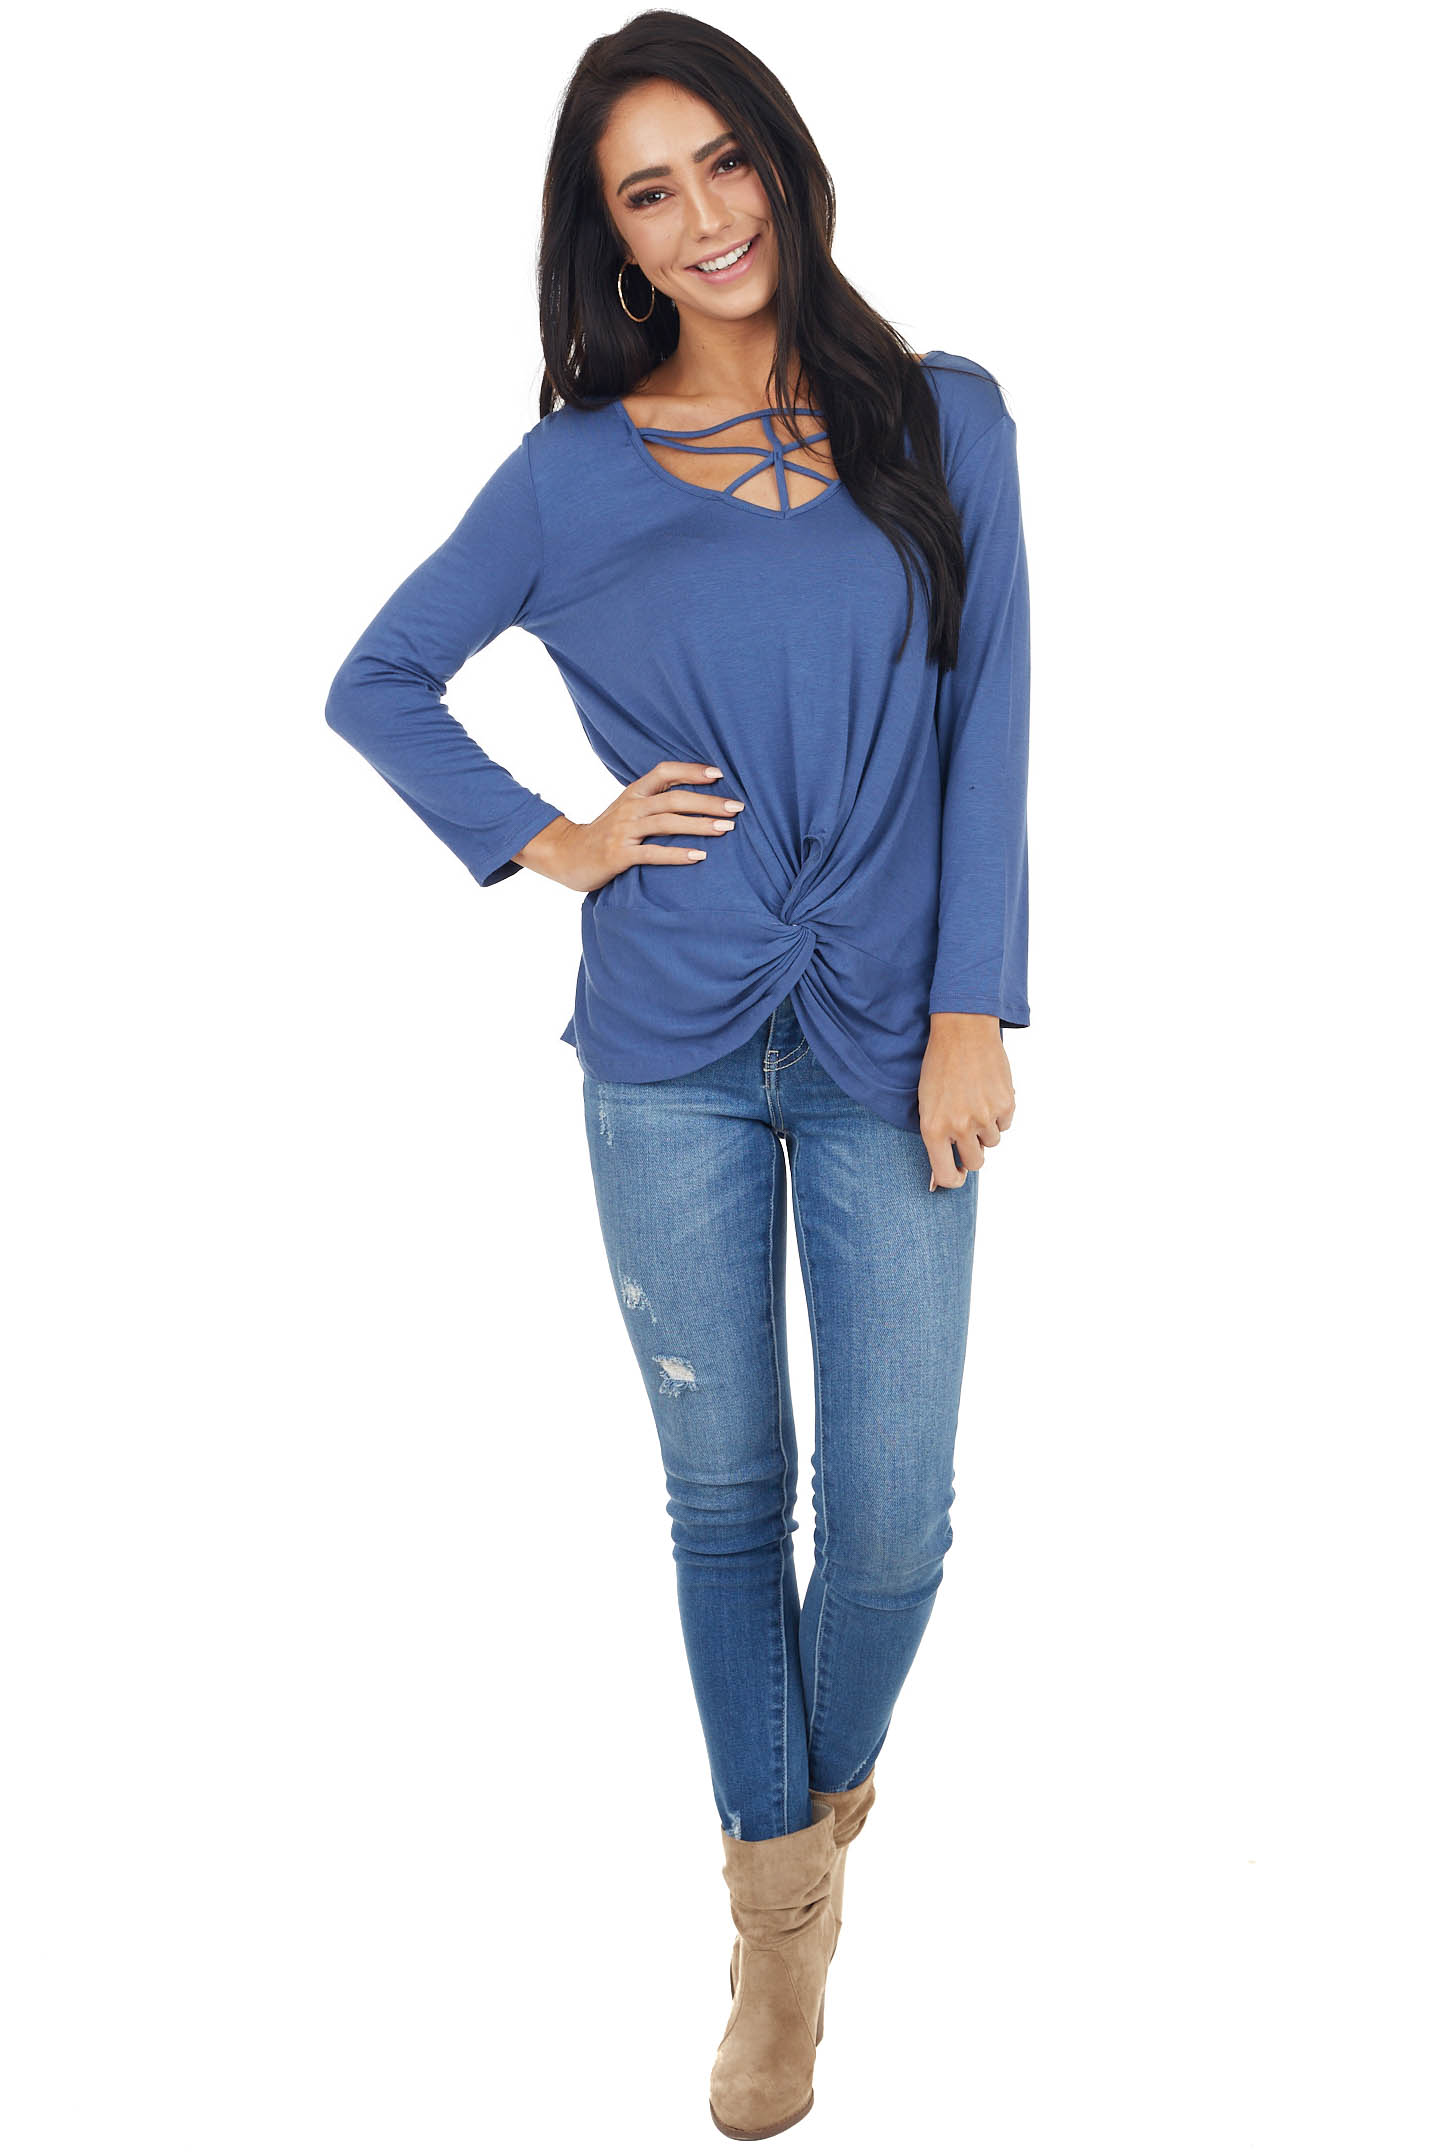 Dusty Blue 3/4 Sleeve Top with Caged Neckline Detail